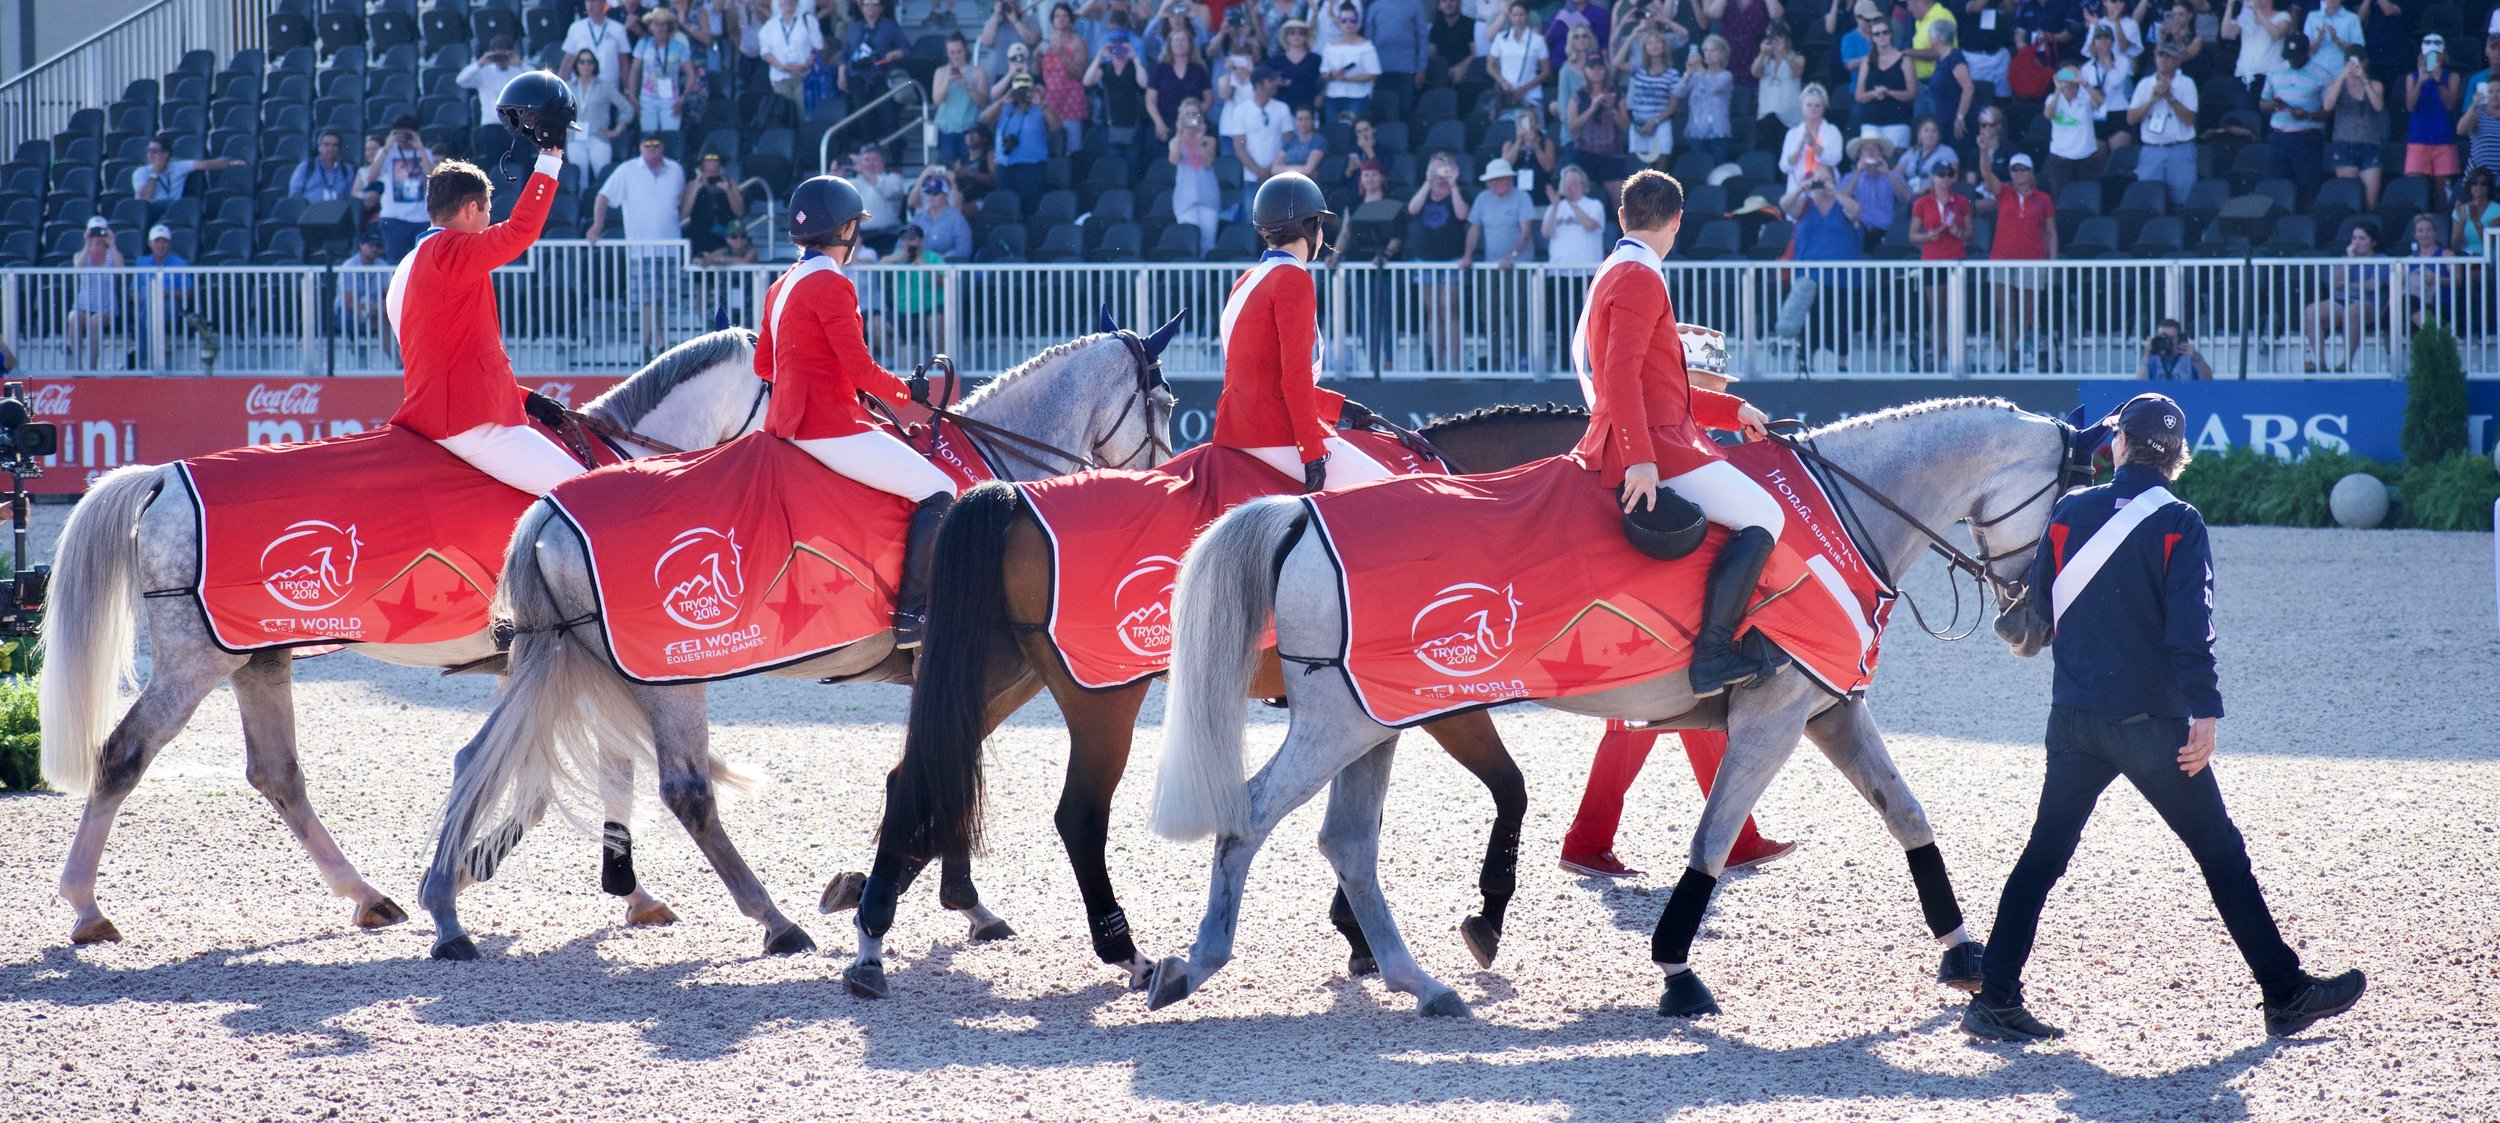 Team work makes the dream work! At the World Equestrian Games in 2018 the U.S. Gold Medal team was in step during the awards ceremony. pc: The Tech Equestrian